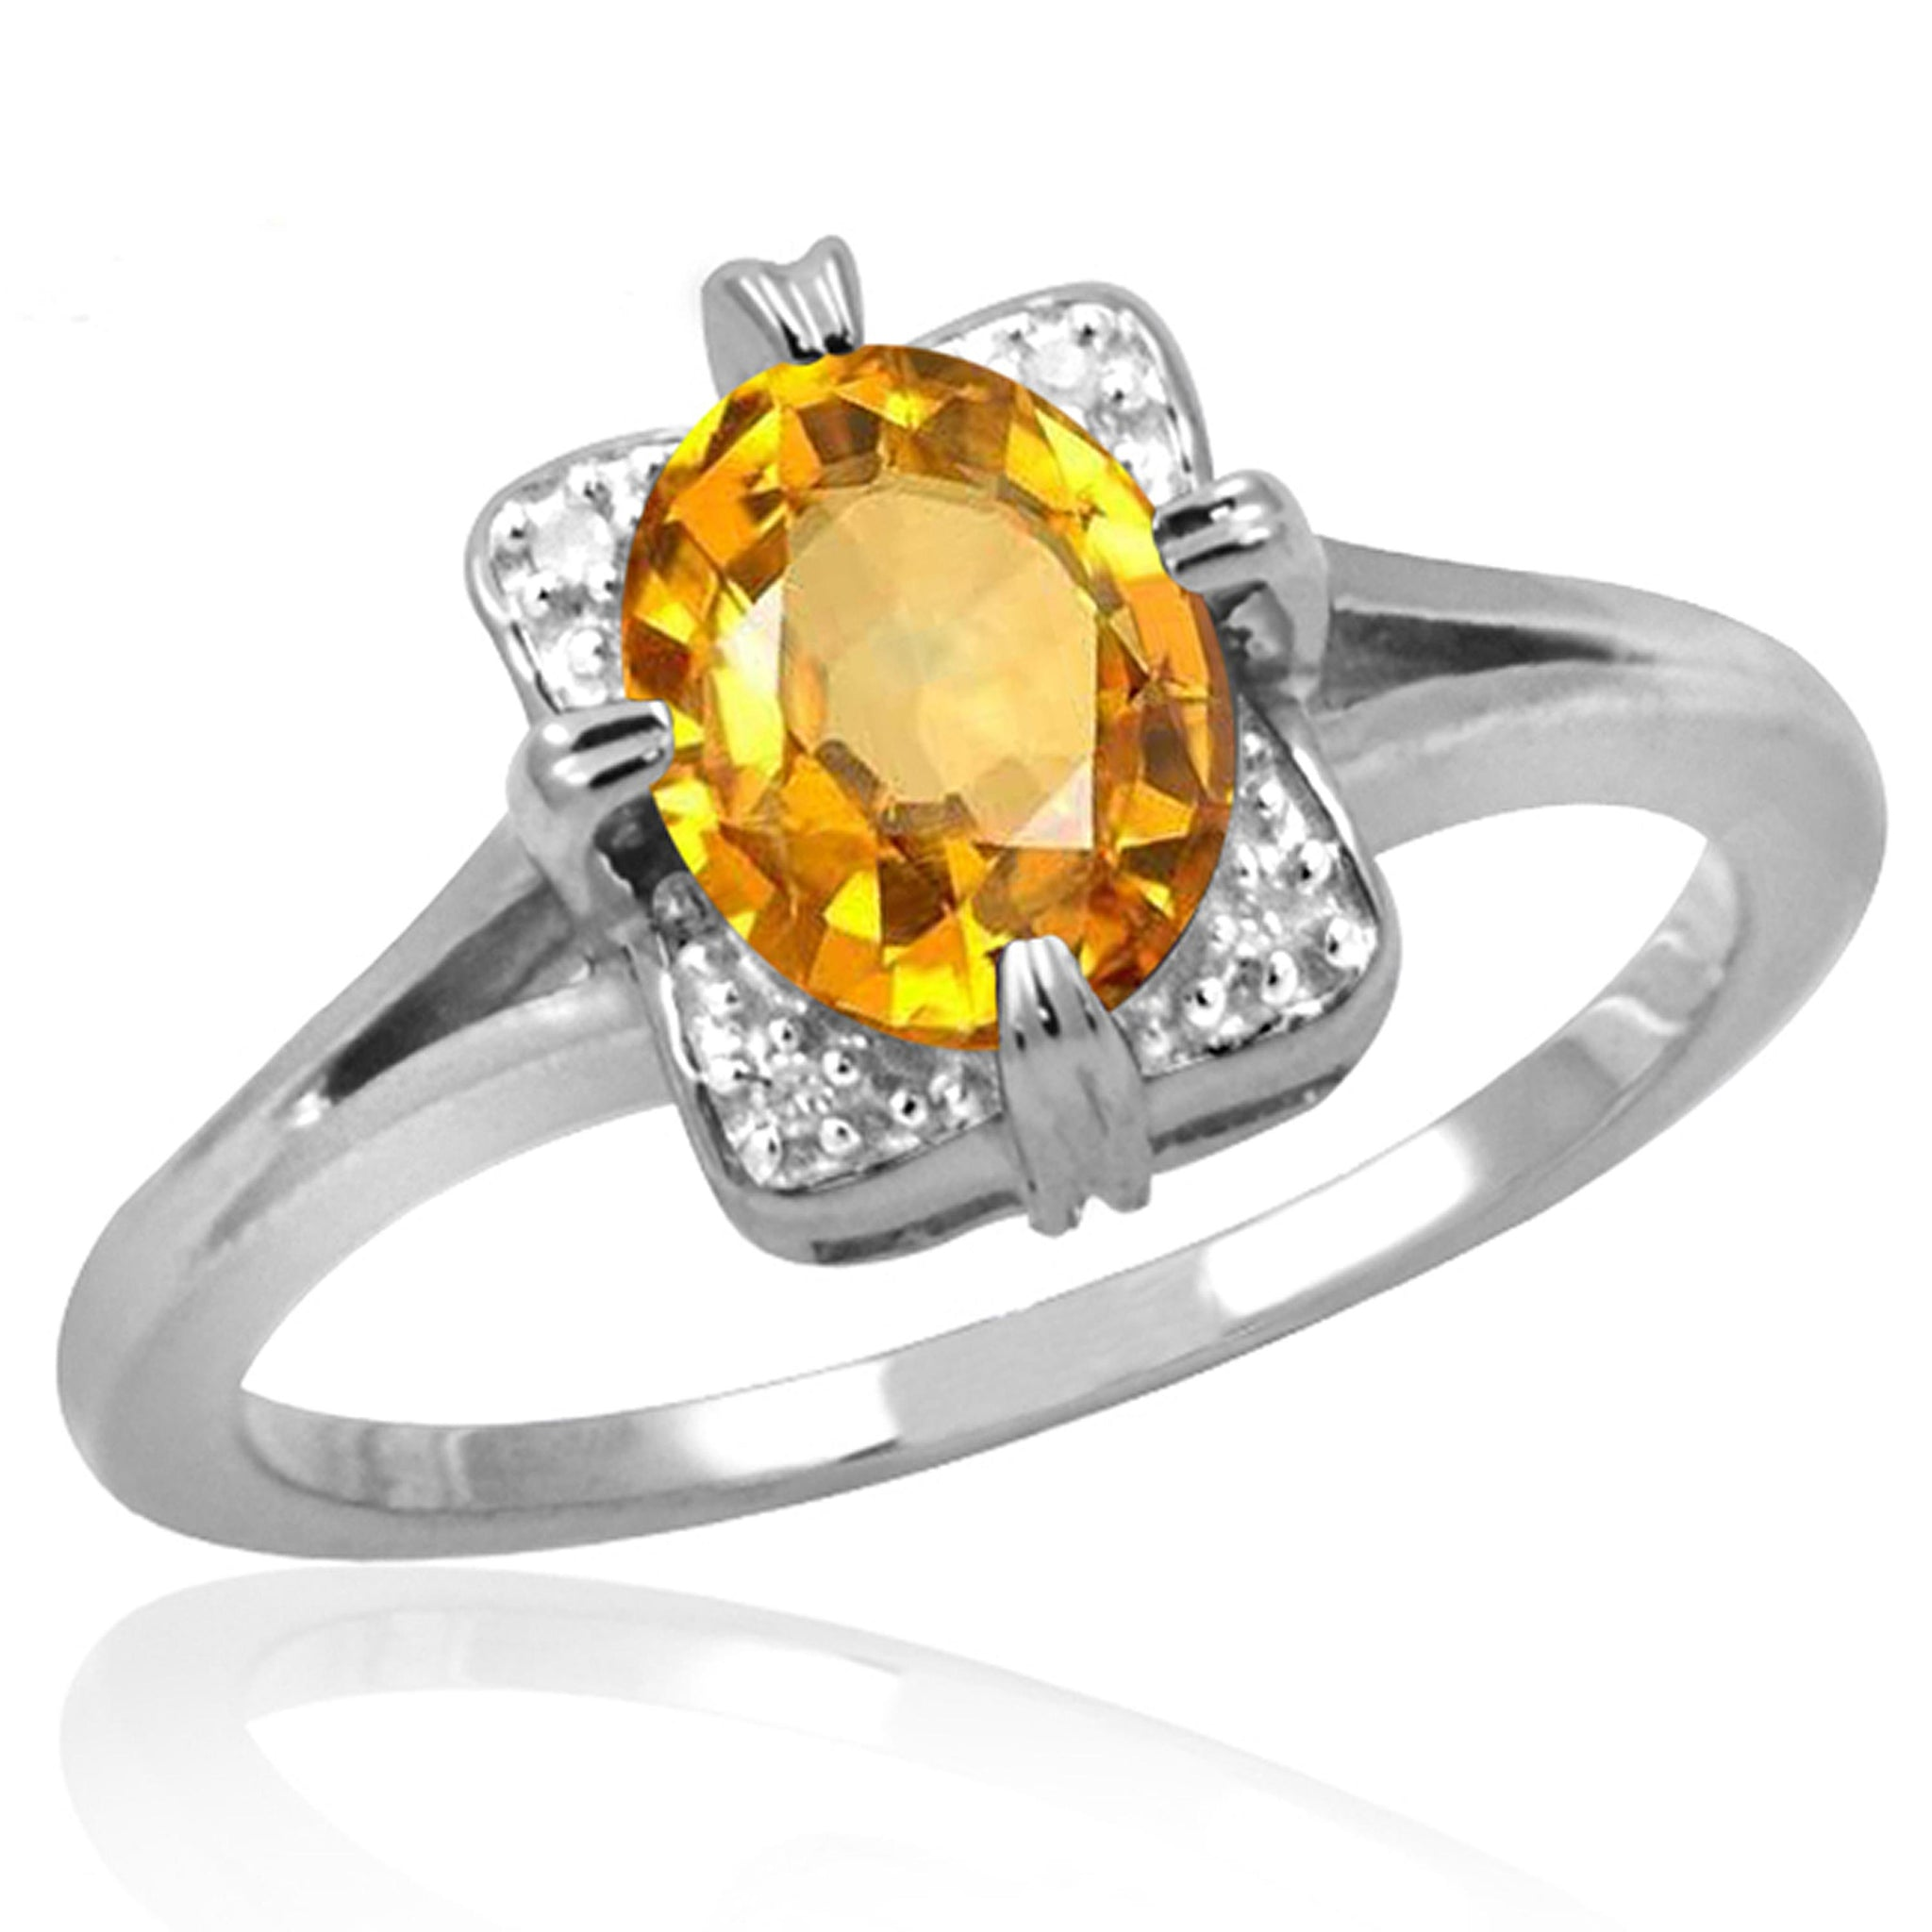 JewelonFire 1.00 Carat T.G.W. Citrine And White Diamond Accent Sterling Silver Ring - Assorted Colors